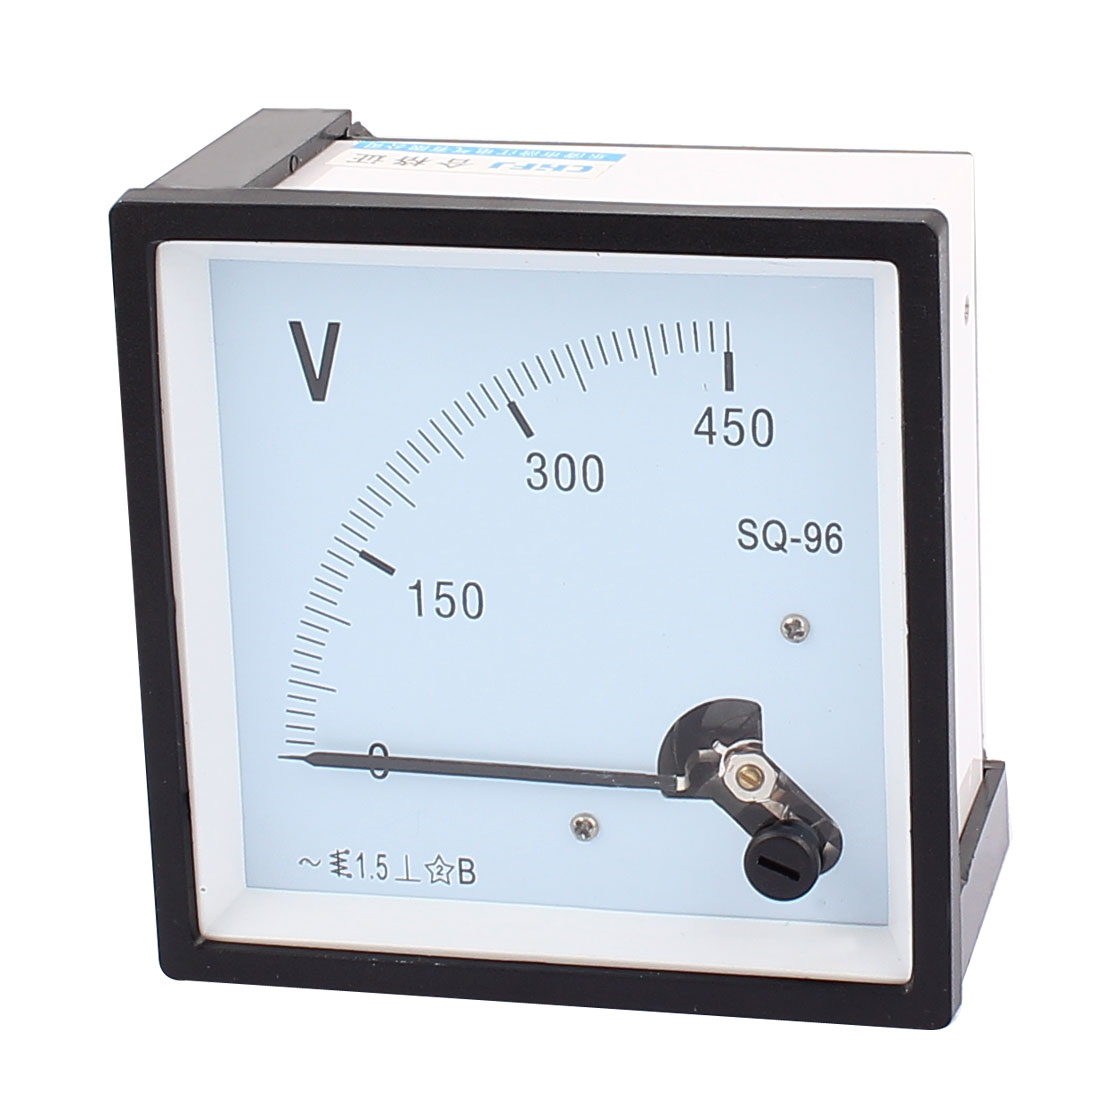 SQ-96 AC 0-450V Analog Pointer Voltmeter Panel Mounting Meter Gauge